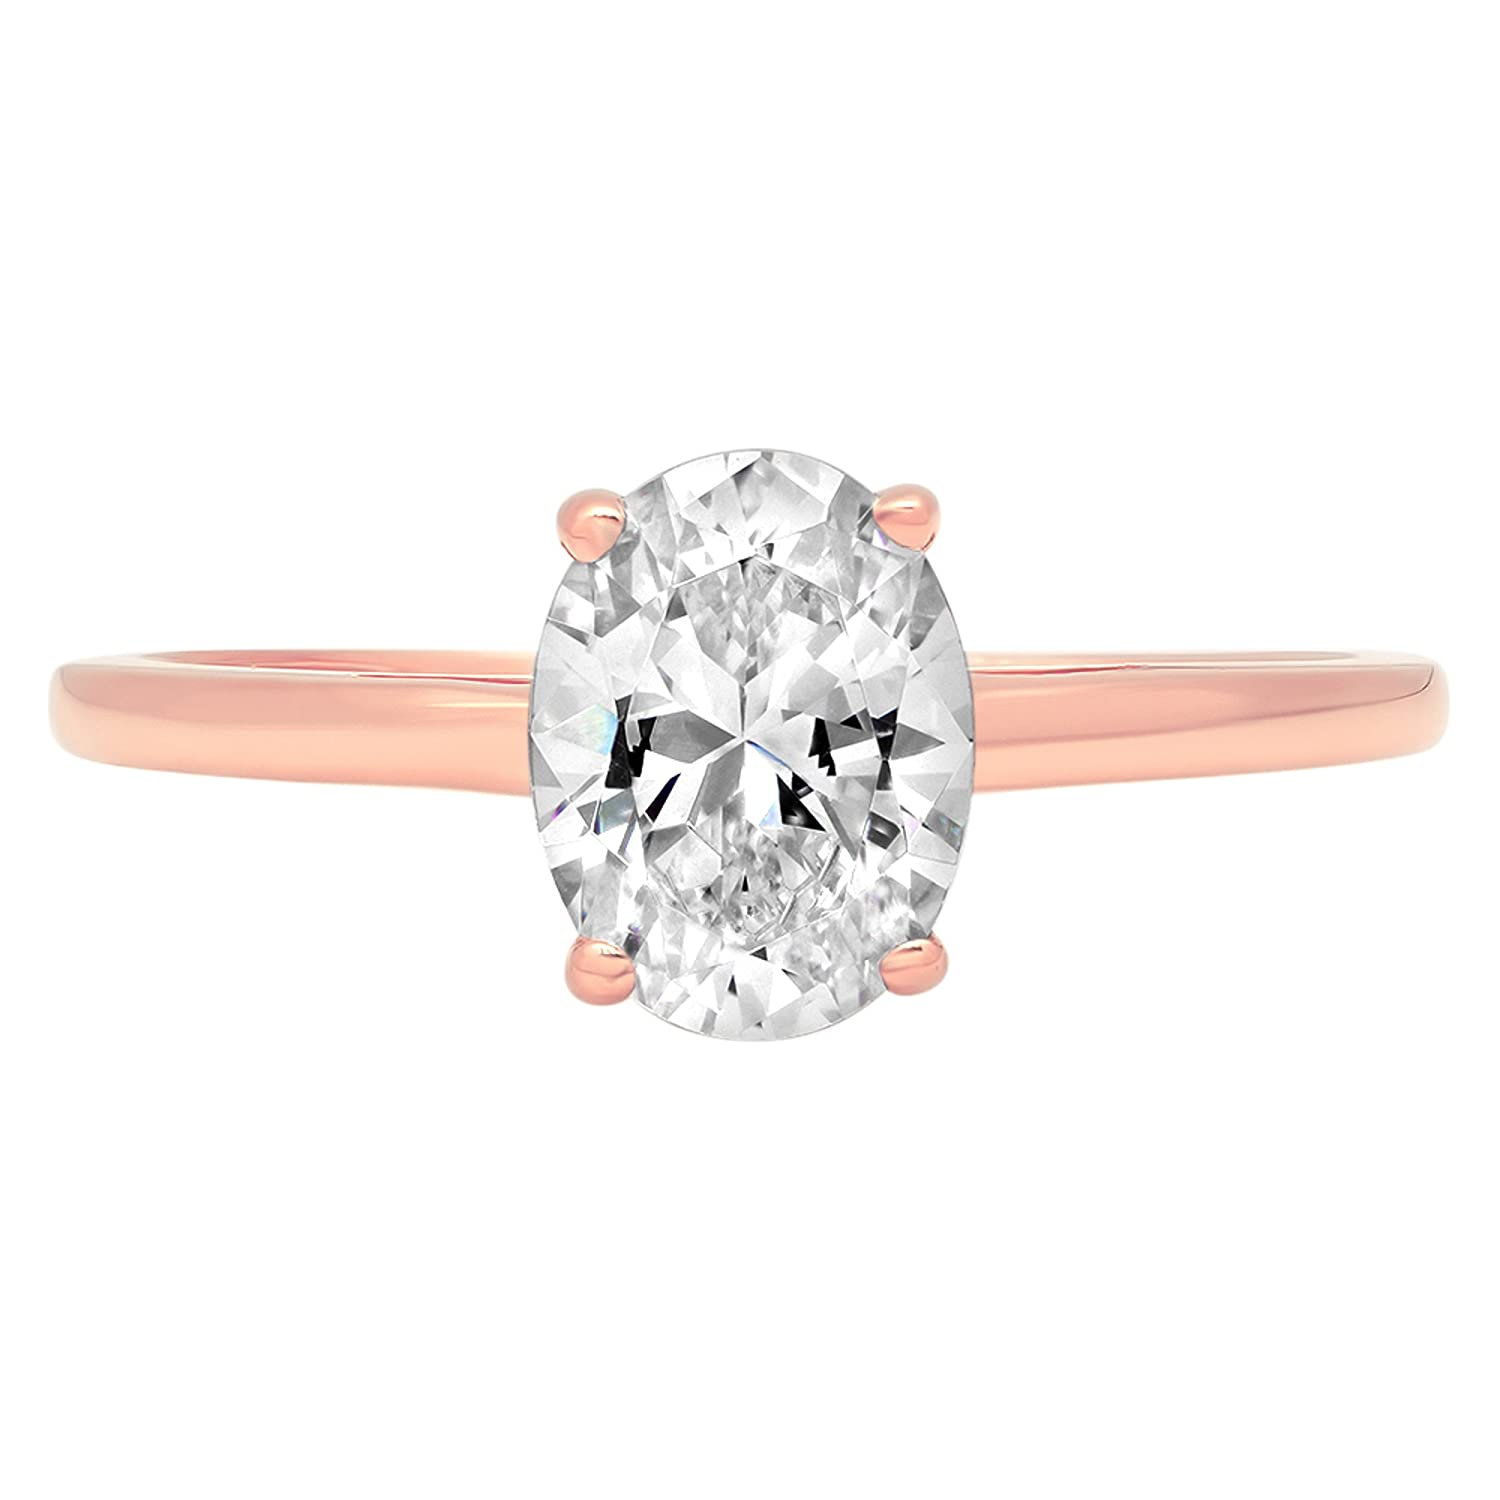 0.9ct Brilliant Oval Cut Solitaire Classic Engagement Anniversary Statement Wedding Promise Bridal Petite Ring in Solid 14k Rose Gold for Women